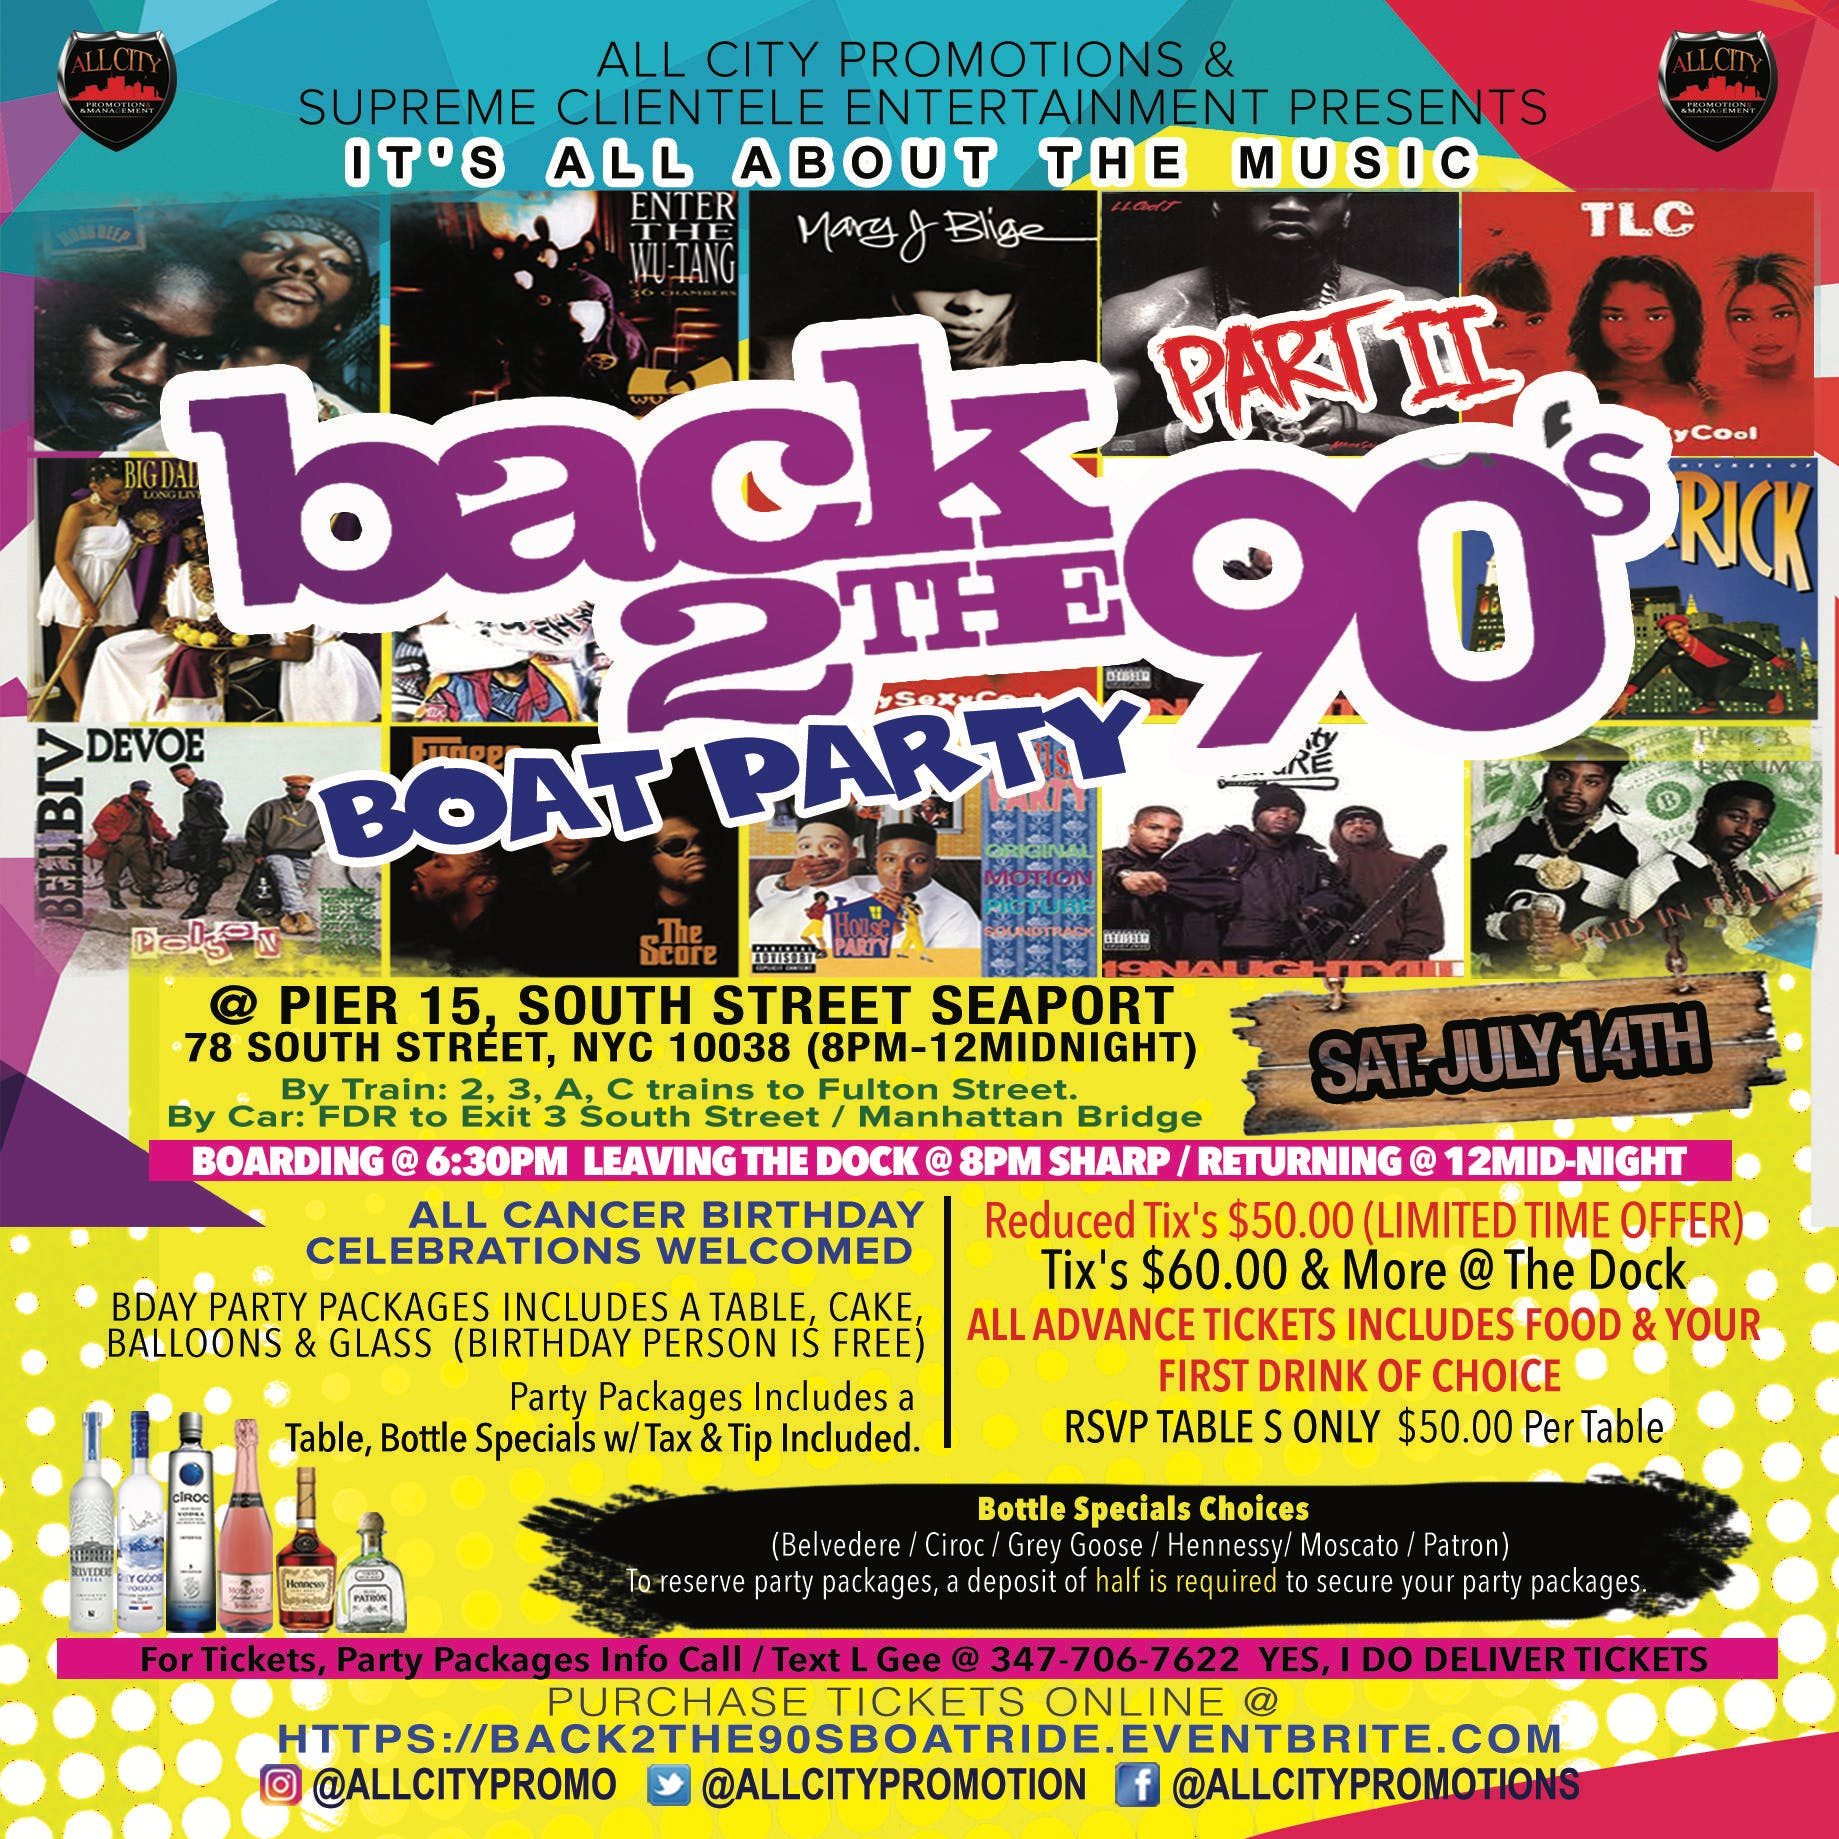 BACK TO THE 90's BOAT RIDE PT3, Fri 7/26 @ PI